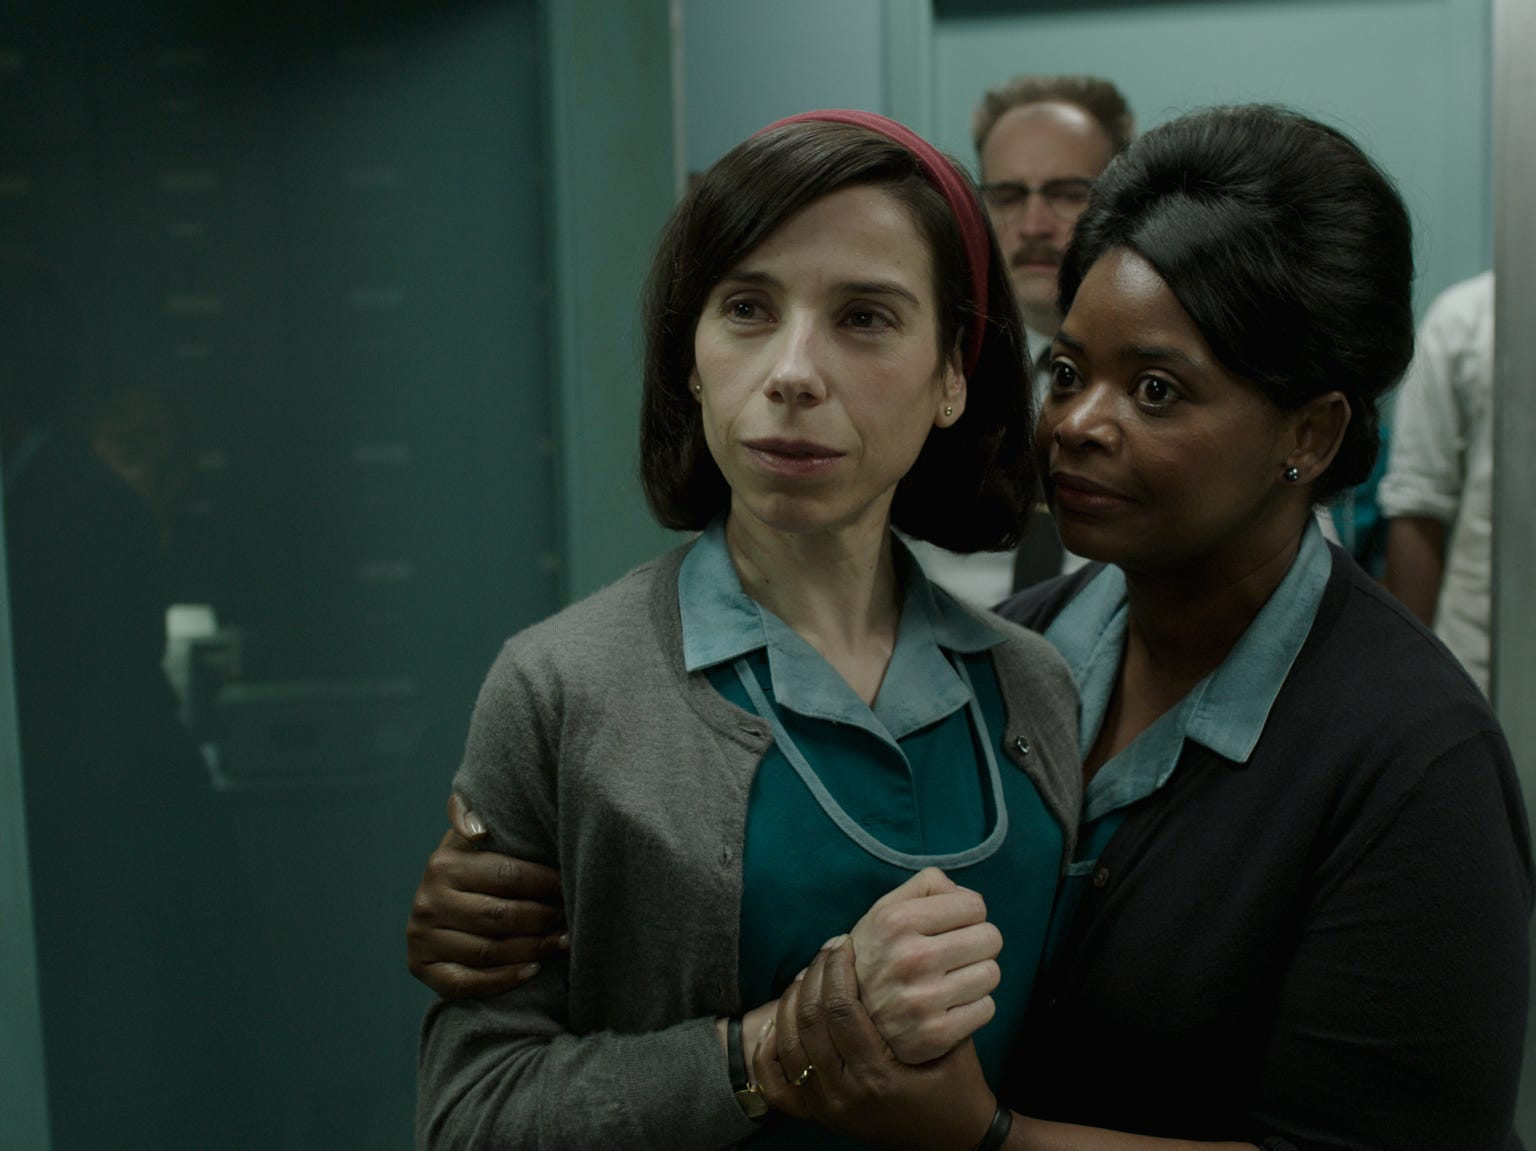 Sally Hawkins and Octavia Spencer in the film THE SHAPE OF WATER. Photo courtesy of Fox Searchlight Pictures.© 2017 Twentieth Century Fox Film Corporation All Rights Reserved [Via MerlinFTP Drop]